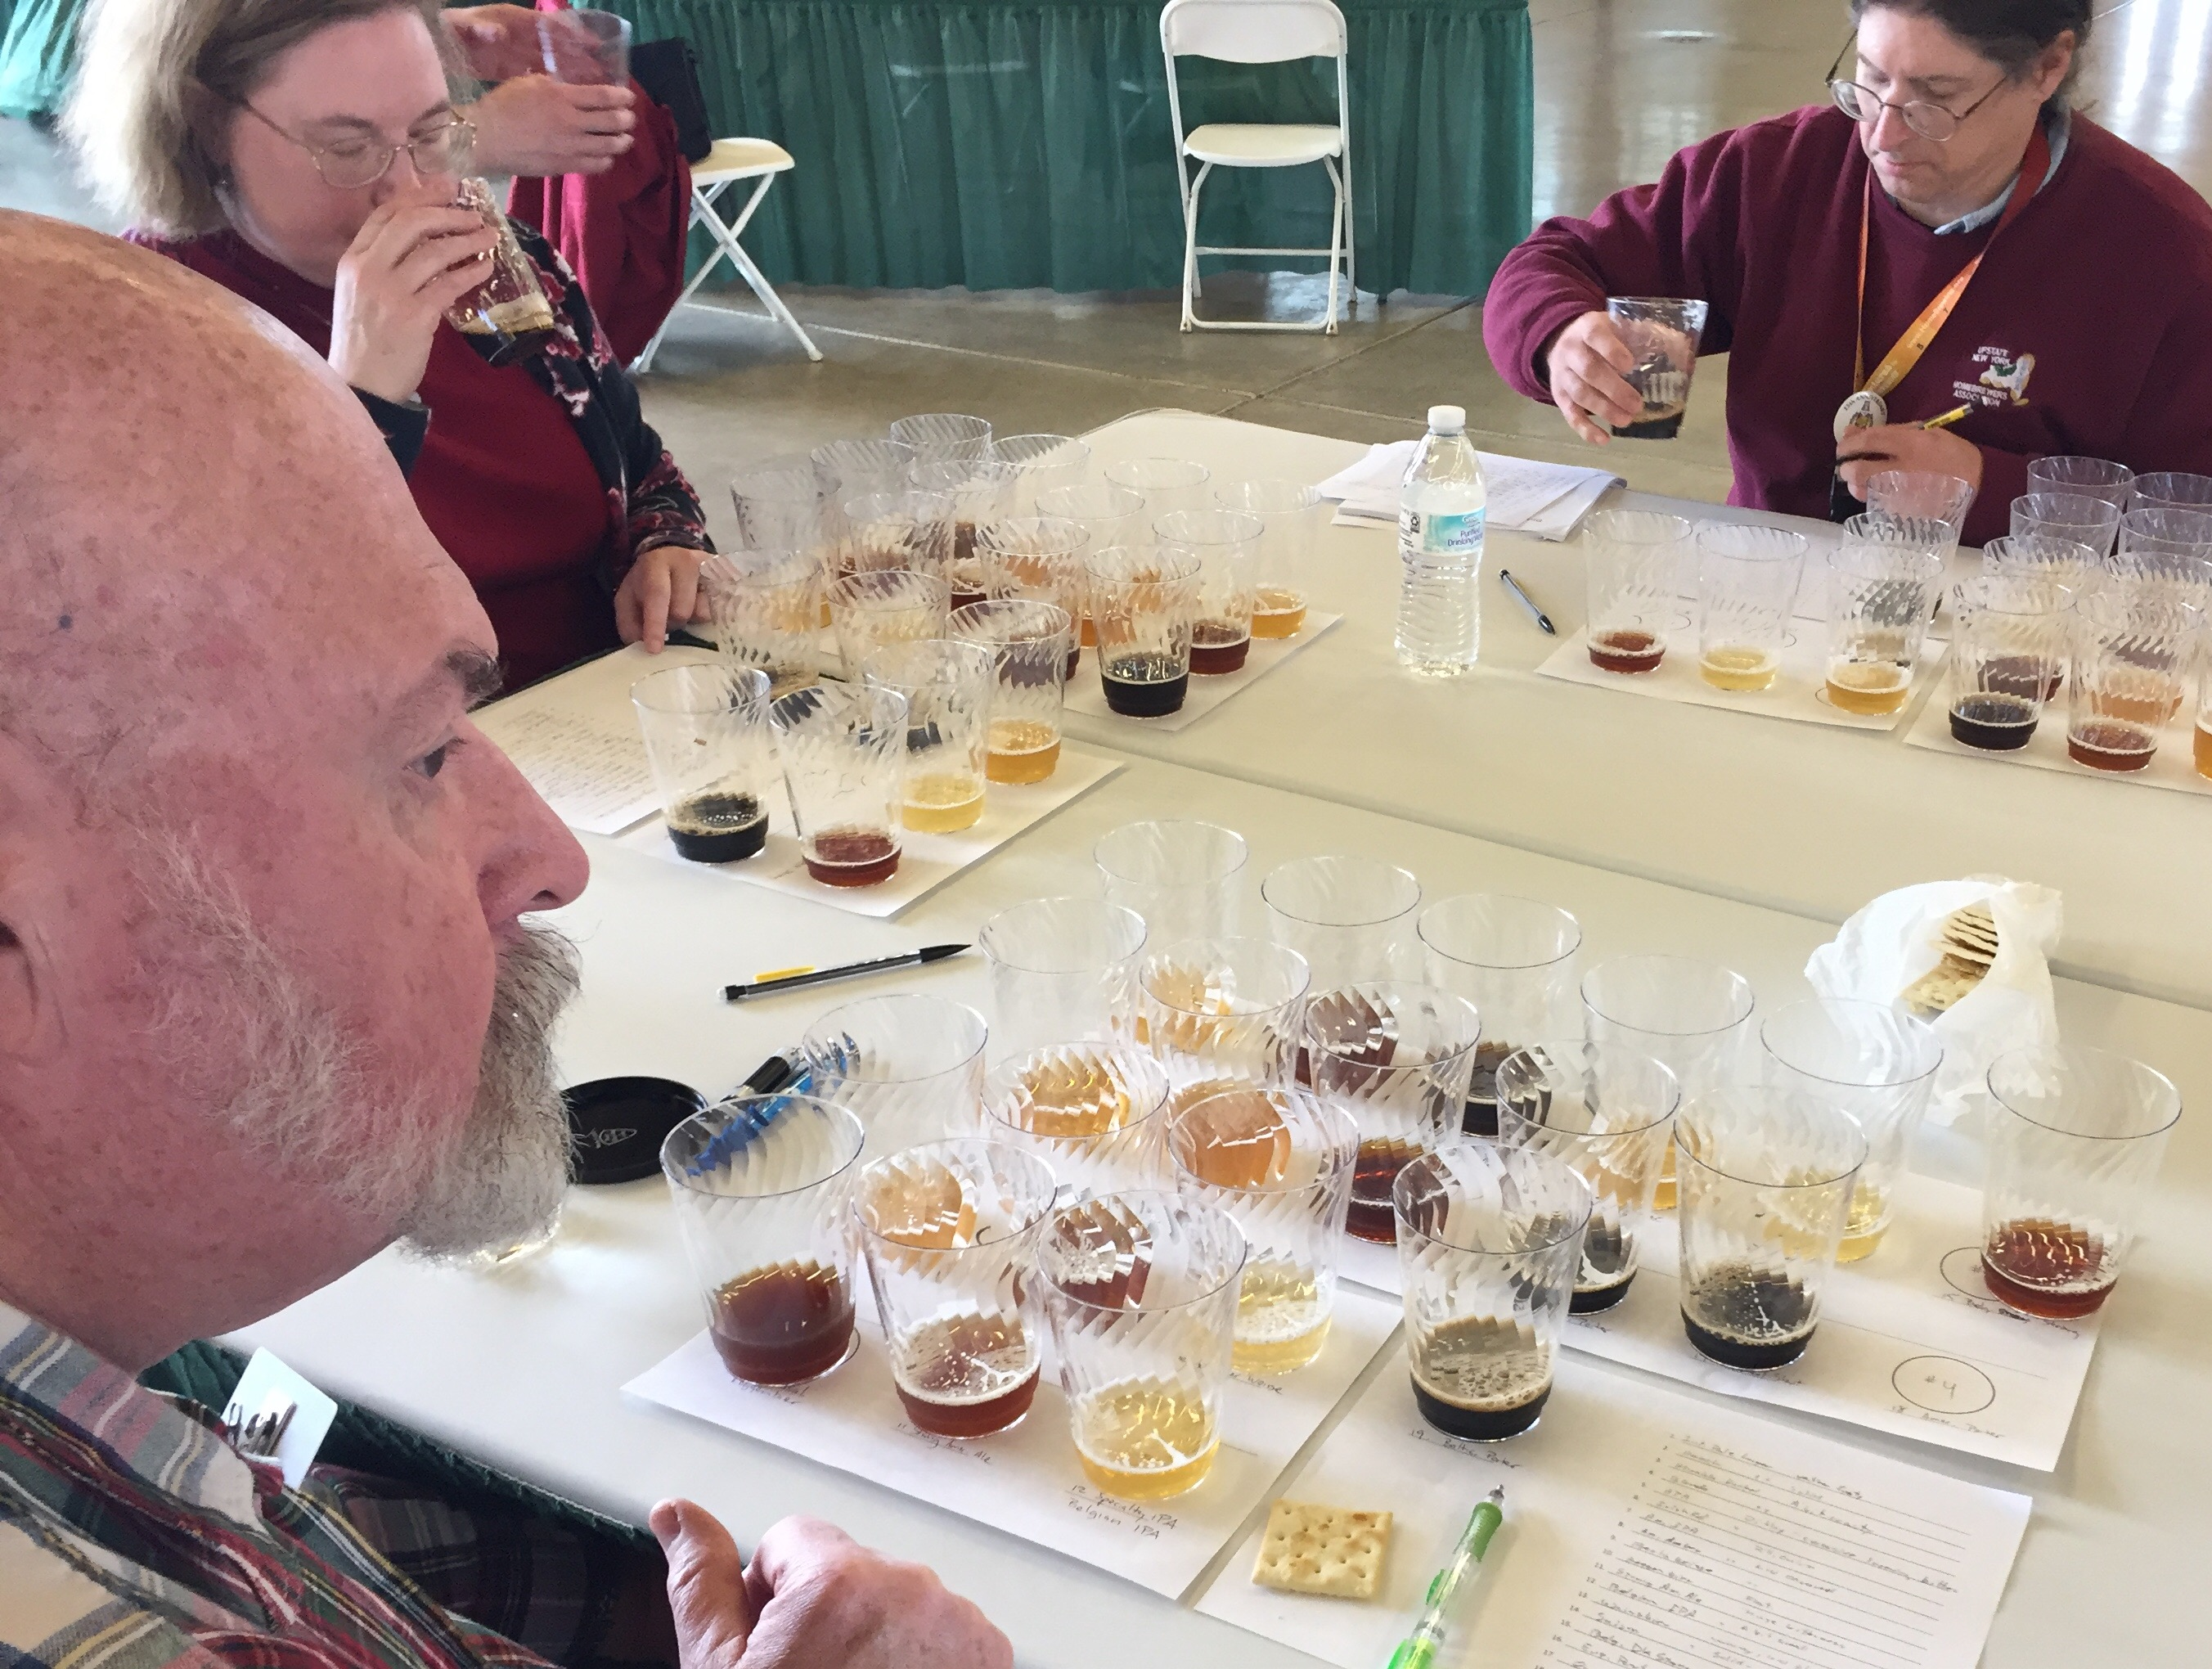 Beer judges Terry Felton, Kira Barnes and Thomas Barnes (from left to right) judge entries in the best of show round of the Erie County Fair homebrewing competition on Saturday, April 22, 2017.  (Photo provided by Erie County Fair)